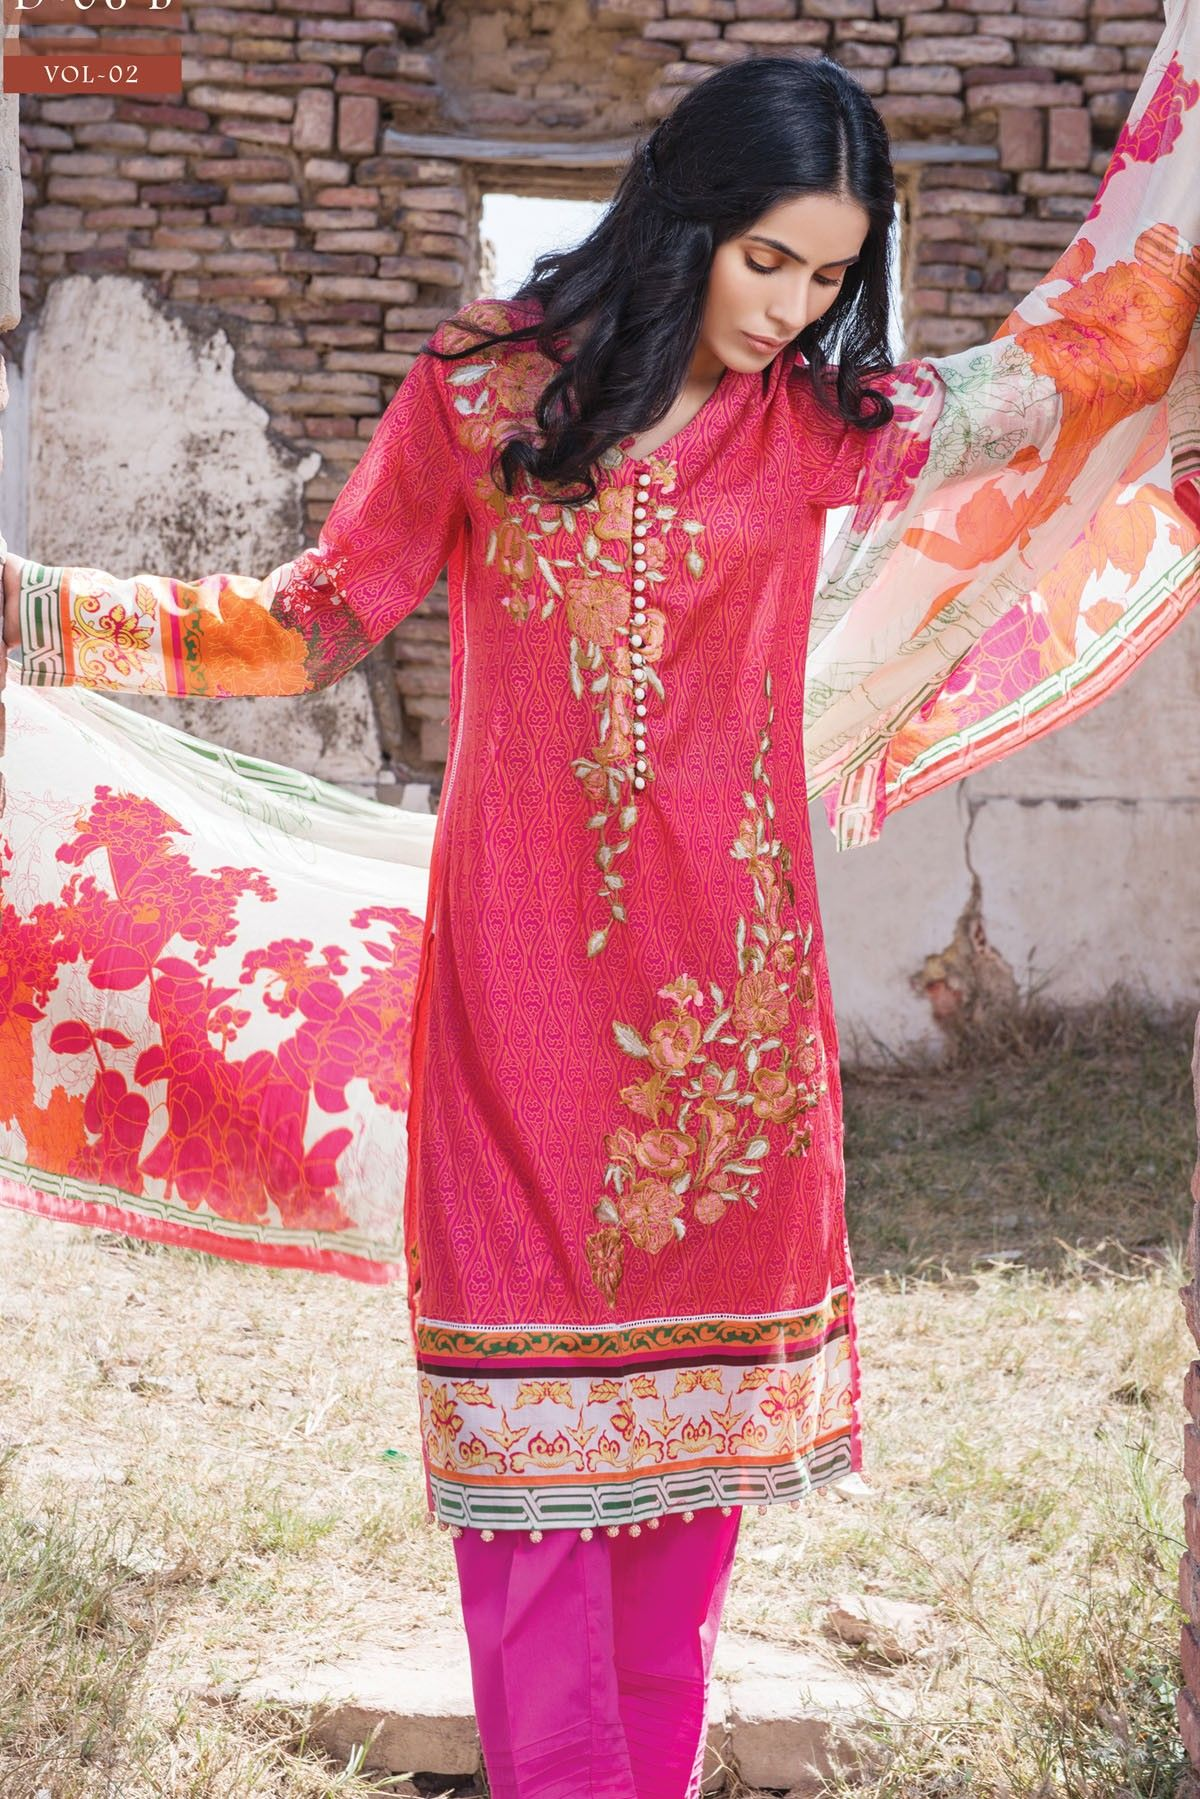 Buy Lawn zeniya by deepak perwani latest collection pictures trends